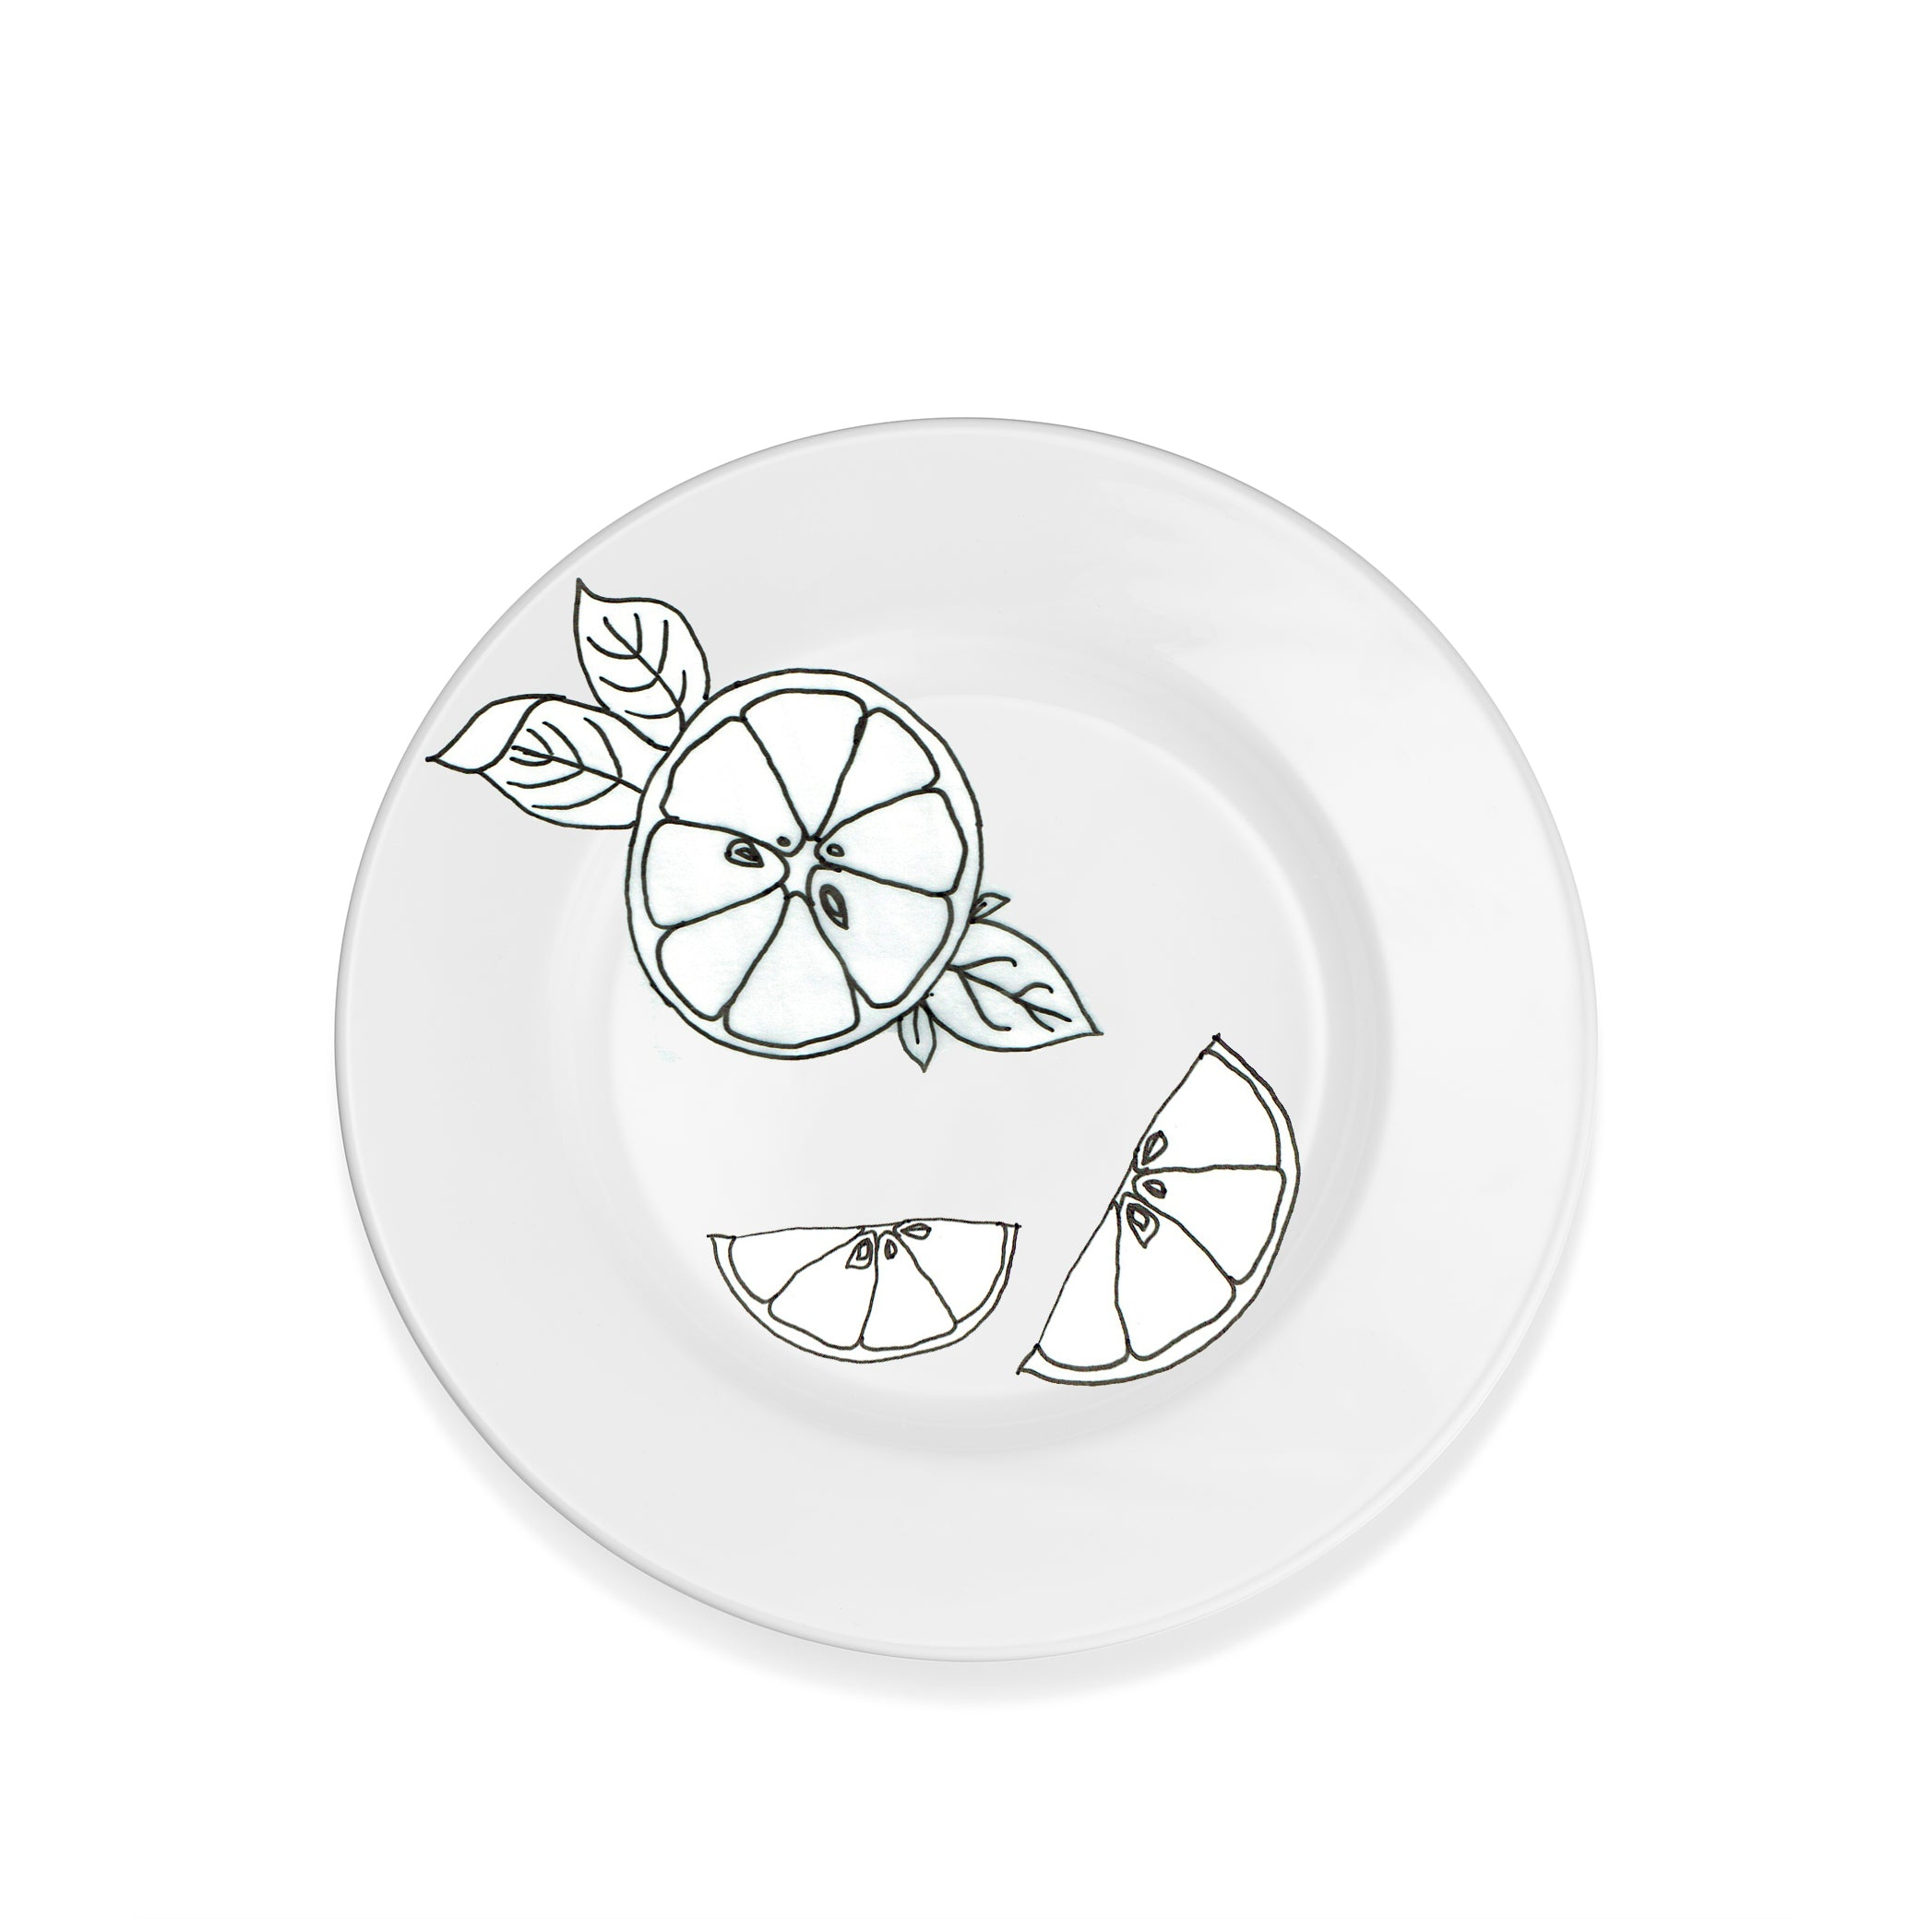 S&B Plain White Rimmed Ceramic Dinner Plate, 28.5cm